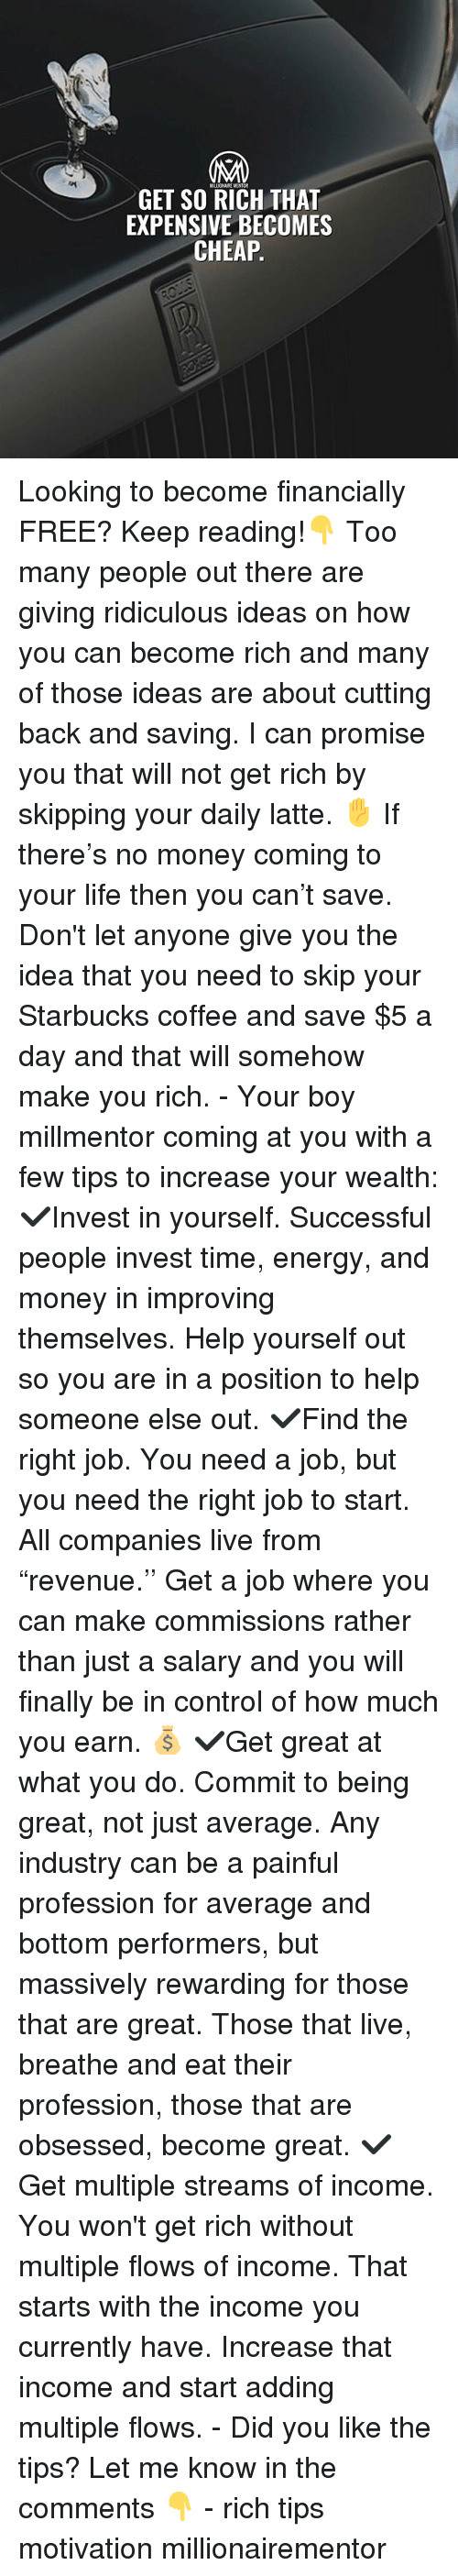 "Energy, Life, and Memes: GET SO RICH THAT  EXPENSIVE BECOMES  CHEAP Looking to become financially FREE? Keep reading!👇 Too many people out there are giving ridiculous ideas on how you can become rich and many of those ideas are about cutting back and saving. I can promise you that will not get rich by skipping your daily latte. ✋ If there's no money coming to your life then you can't save. Don't let anyone give you the idea that you need to skip your Starbucks coffee and save $5 a day and that will somehow make you rich. - Your boy millmentor coming at you with a few tips to increase your wealth: ✔️Invest in yourself. Successful people invest time, energy, and money in improving themselves. Help yourself out so you are in a position to help someone else out. ✔️Find the right job. You need a job, but you need the right job to start. All companies live from ""revenue.'' Get a job where you can make commissions rather than just a salary and you will finally be in control of how much you earn. 💰 ✔️Get great at what you do. Commit to being great, not just average. Any industry can be a painful profession for average and bottom performers, but massively rewarding for those that are great. Those that live, breathe and eat their profession, those that are obsessed, become great. ✔️Get multiple streams of income. You won't get rich without multiple flows of income. That starts with the income you currently have. Increase that income and start adding multiple flows. - Did you like the tips? Let me know in the comments 👇 - rich tips motivation millionairementor"